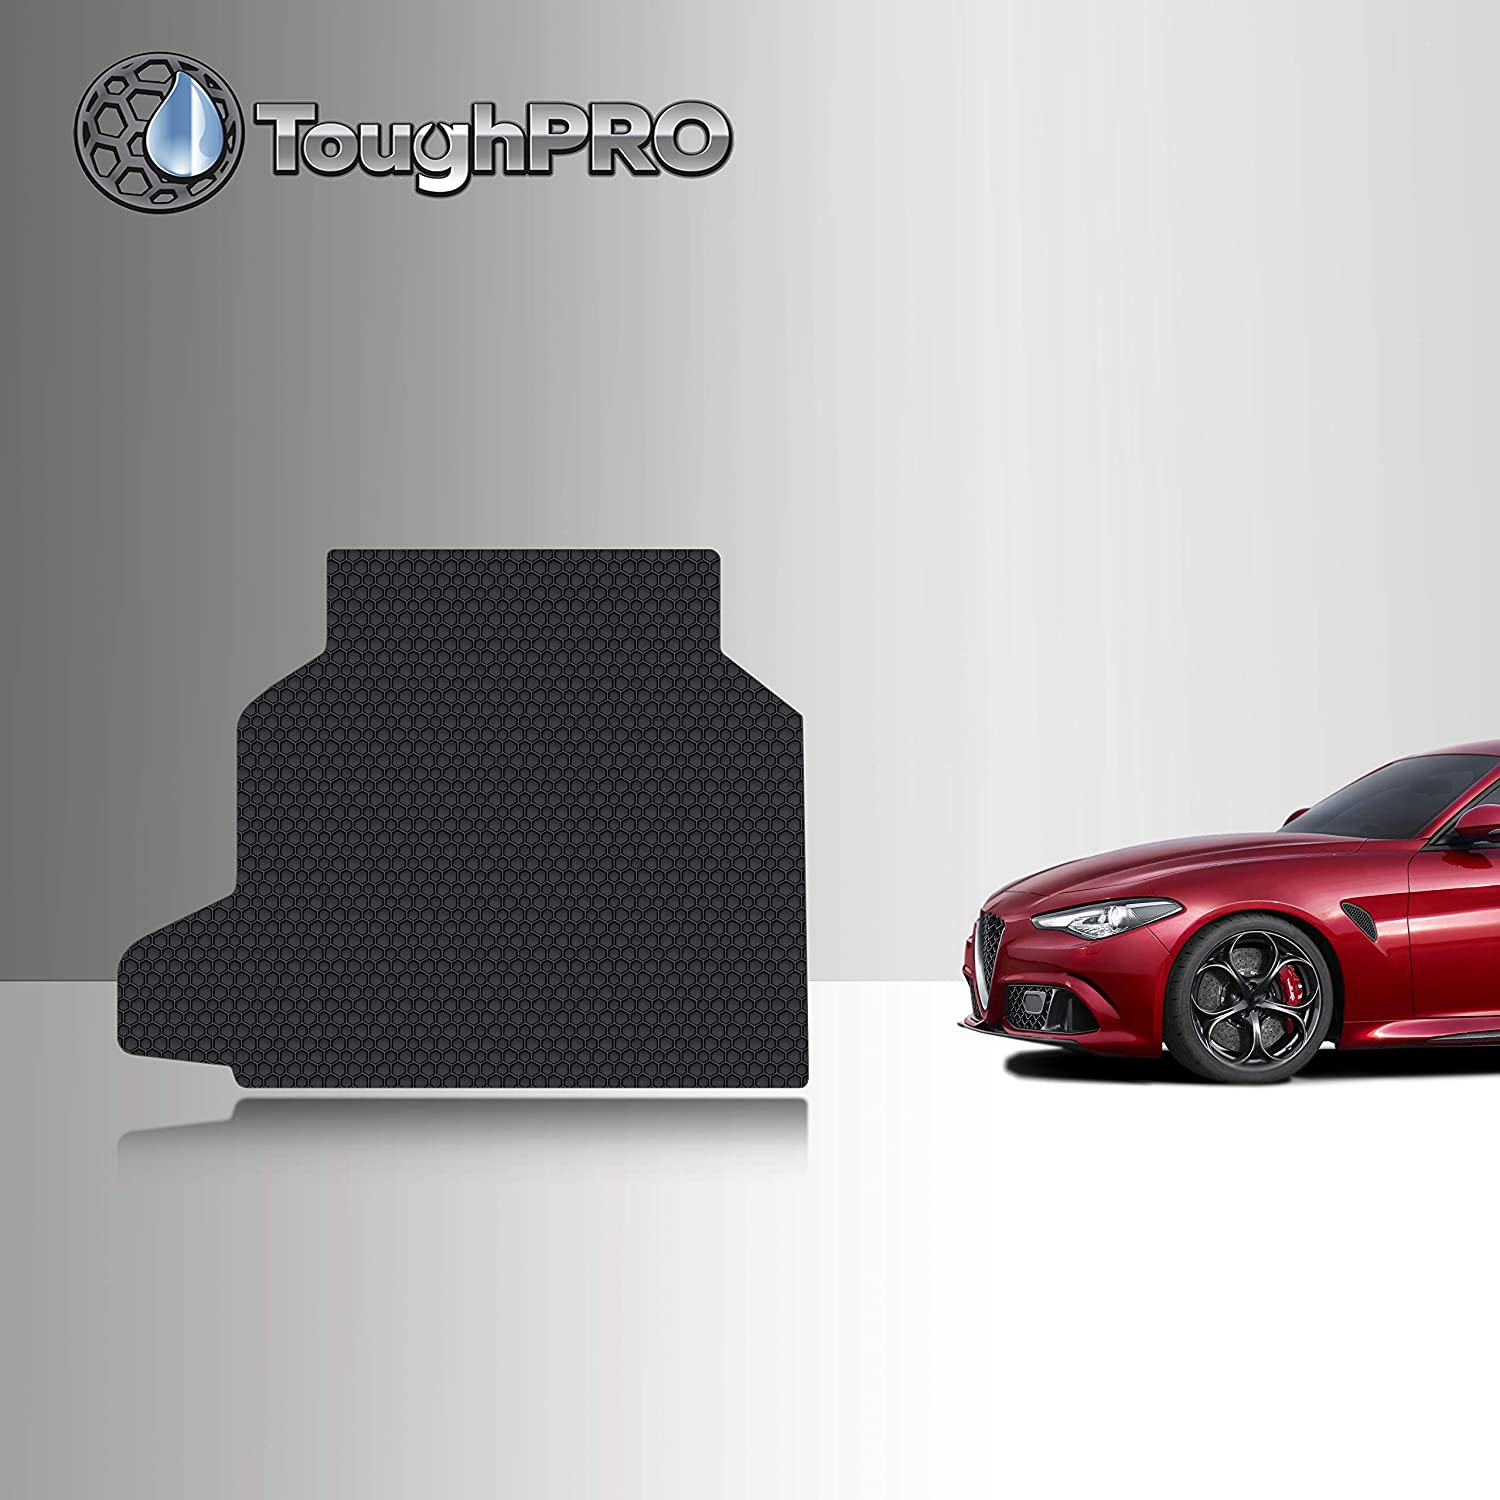 TOUGHPRO Cargo/Trunk Mat Accessories Compatible with Alfa Romeo Giulia Quadrifoglio - All Weather - Heavy Duty - Custom Fit - (Made in USA) - Black Rubber - 2017, 2018, 2019, 2020